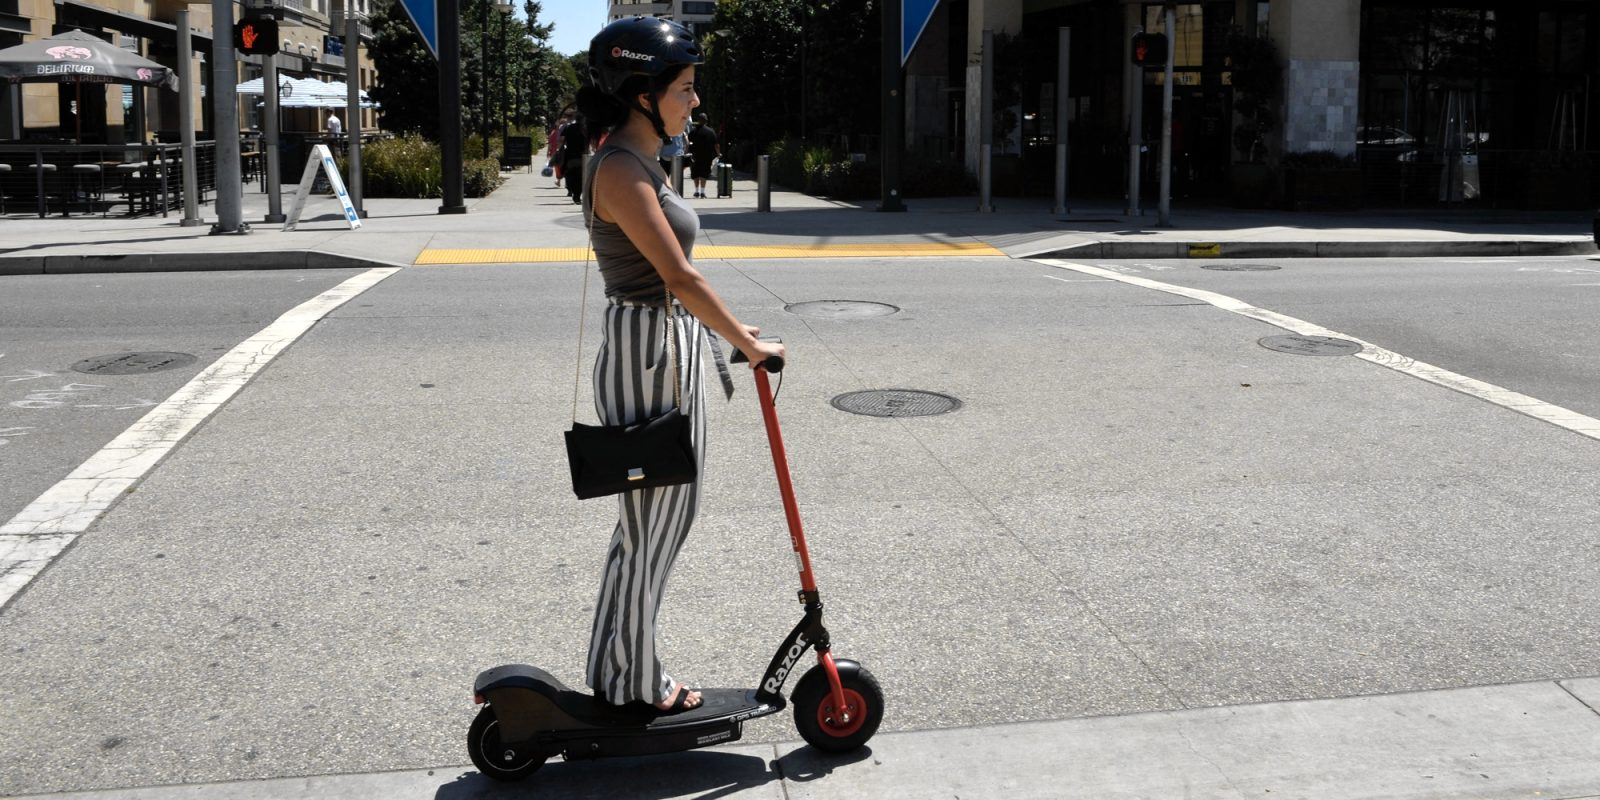 Wheel Chair Rentals Razor Joins The Wave Of Electric Scooter Rentals Becoming